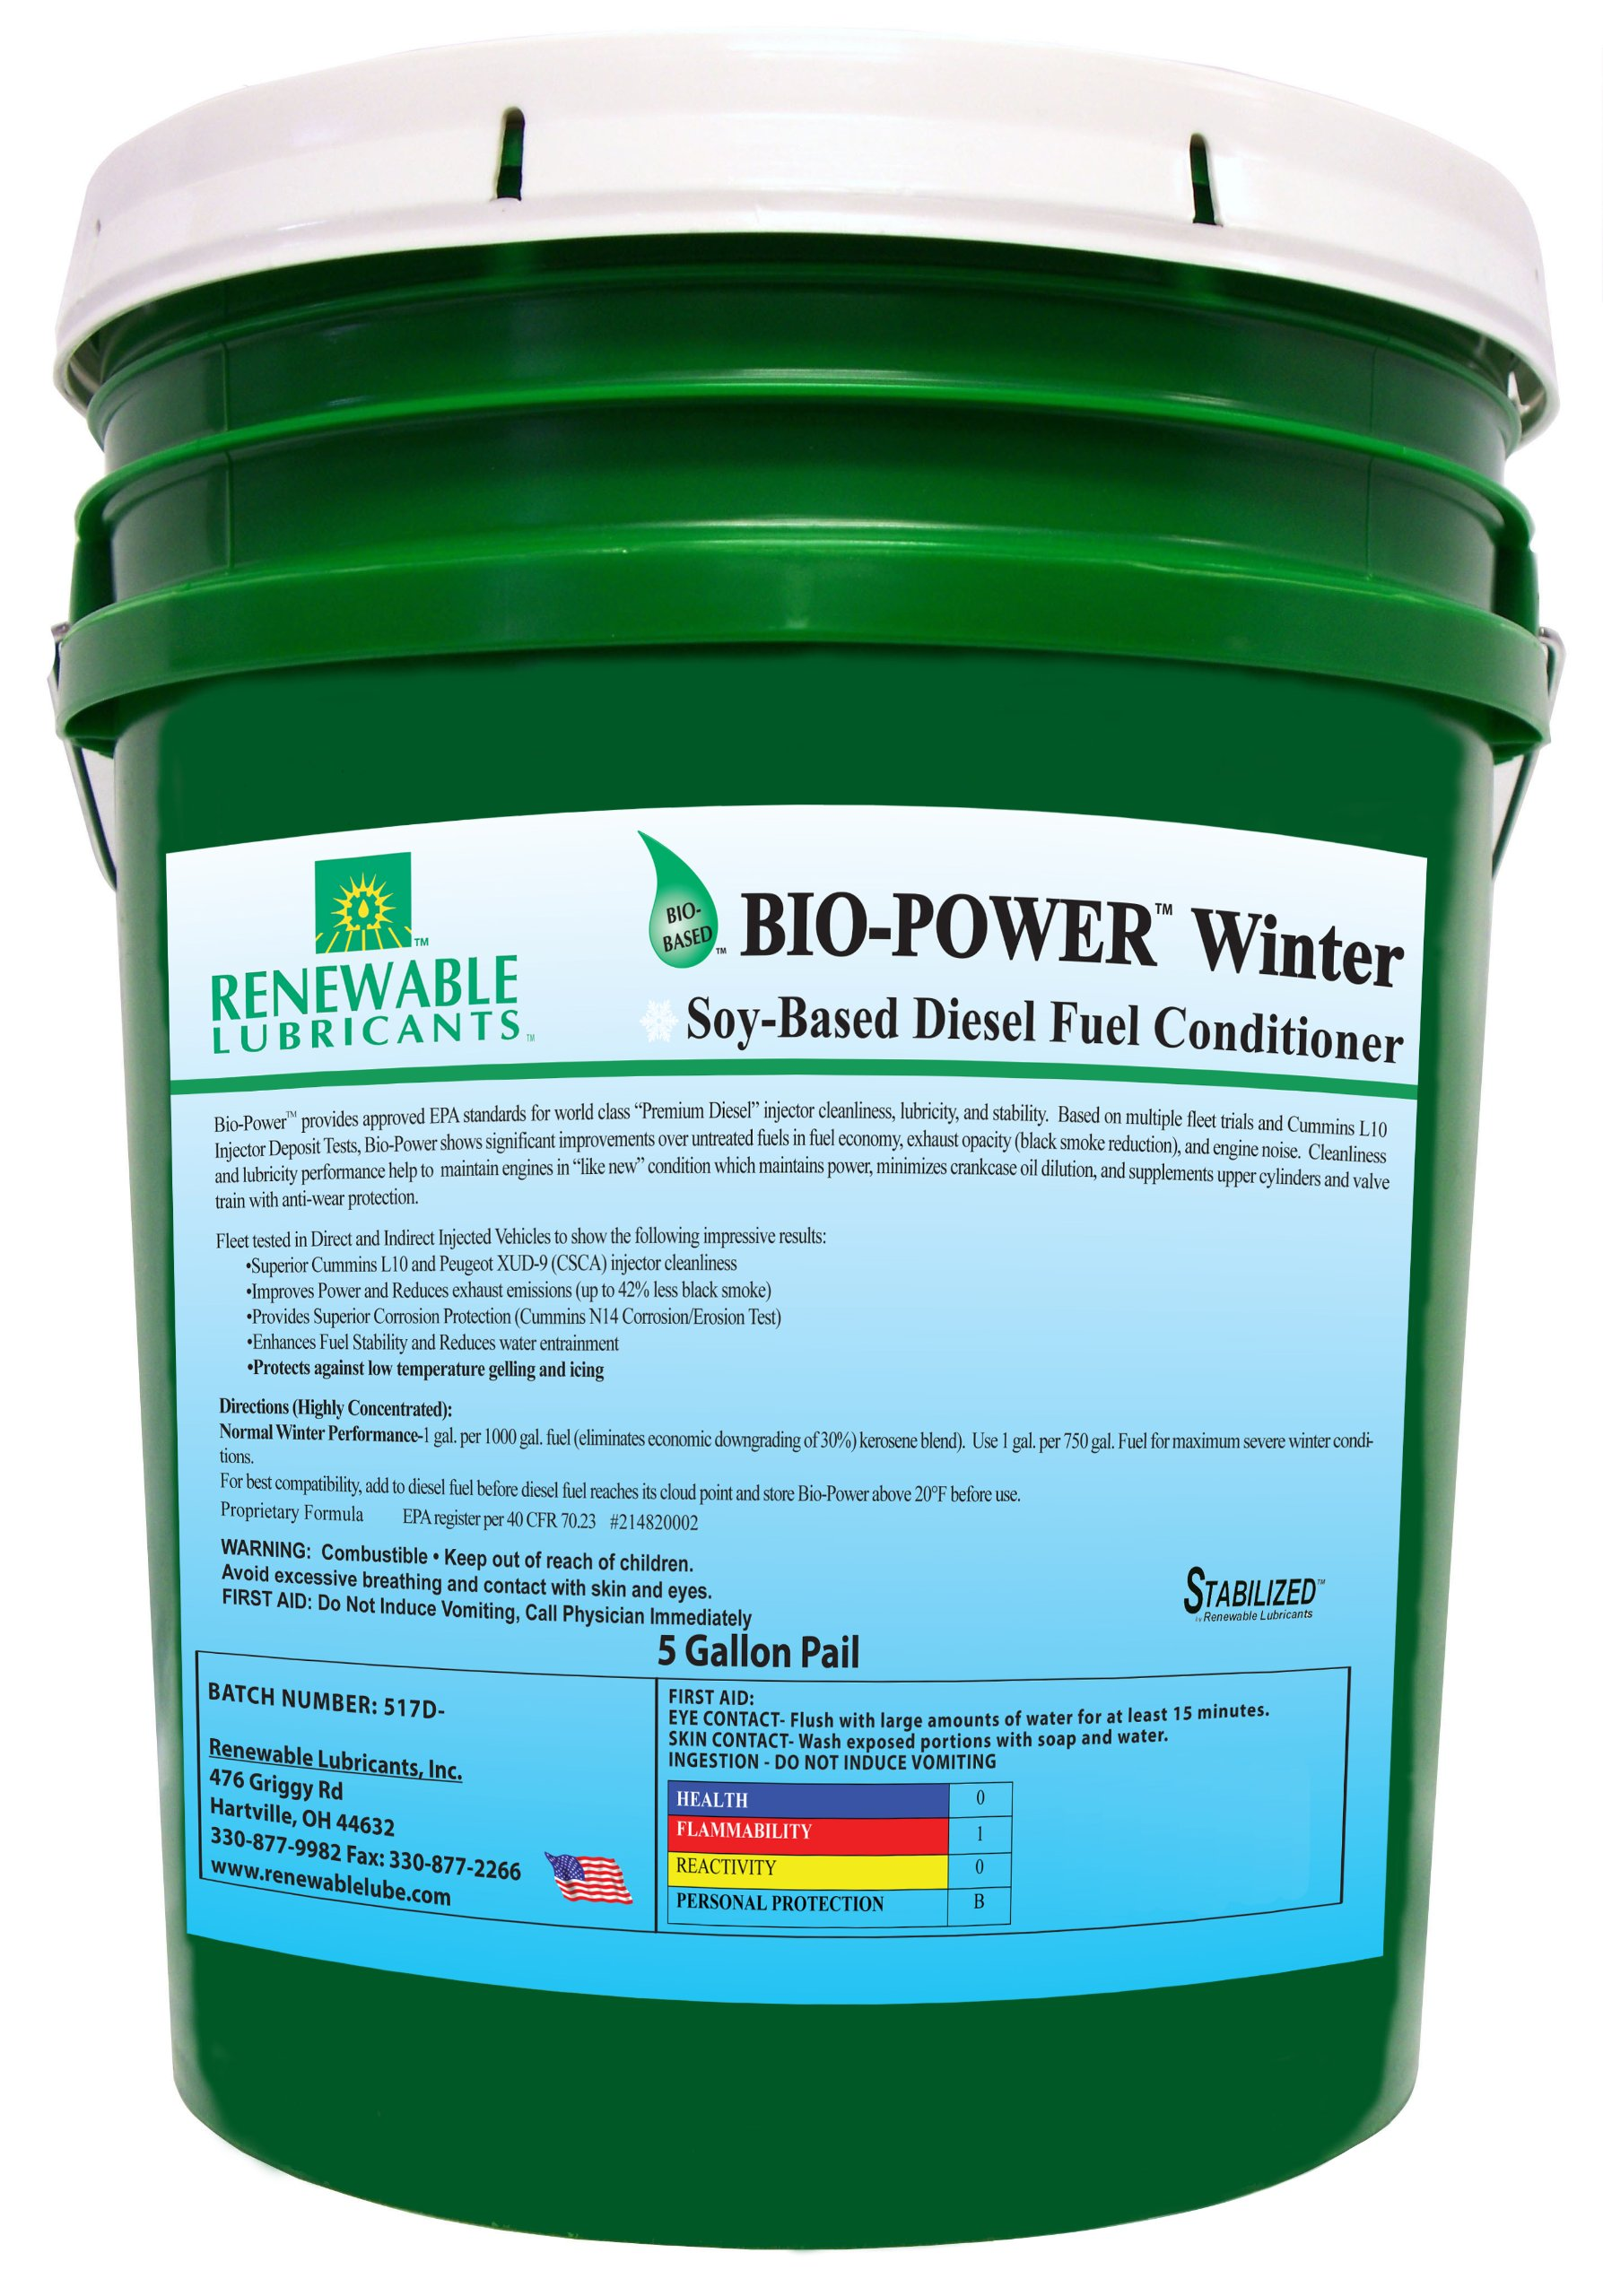 Renewable Lubricants Bio-Power Winter Diesel Fuel Conditioner, 5 Gallon Pail